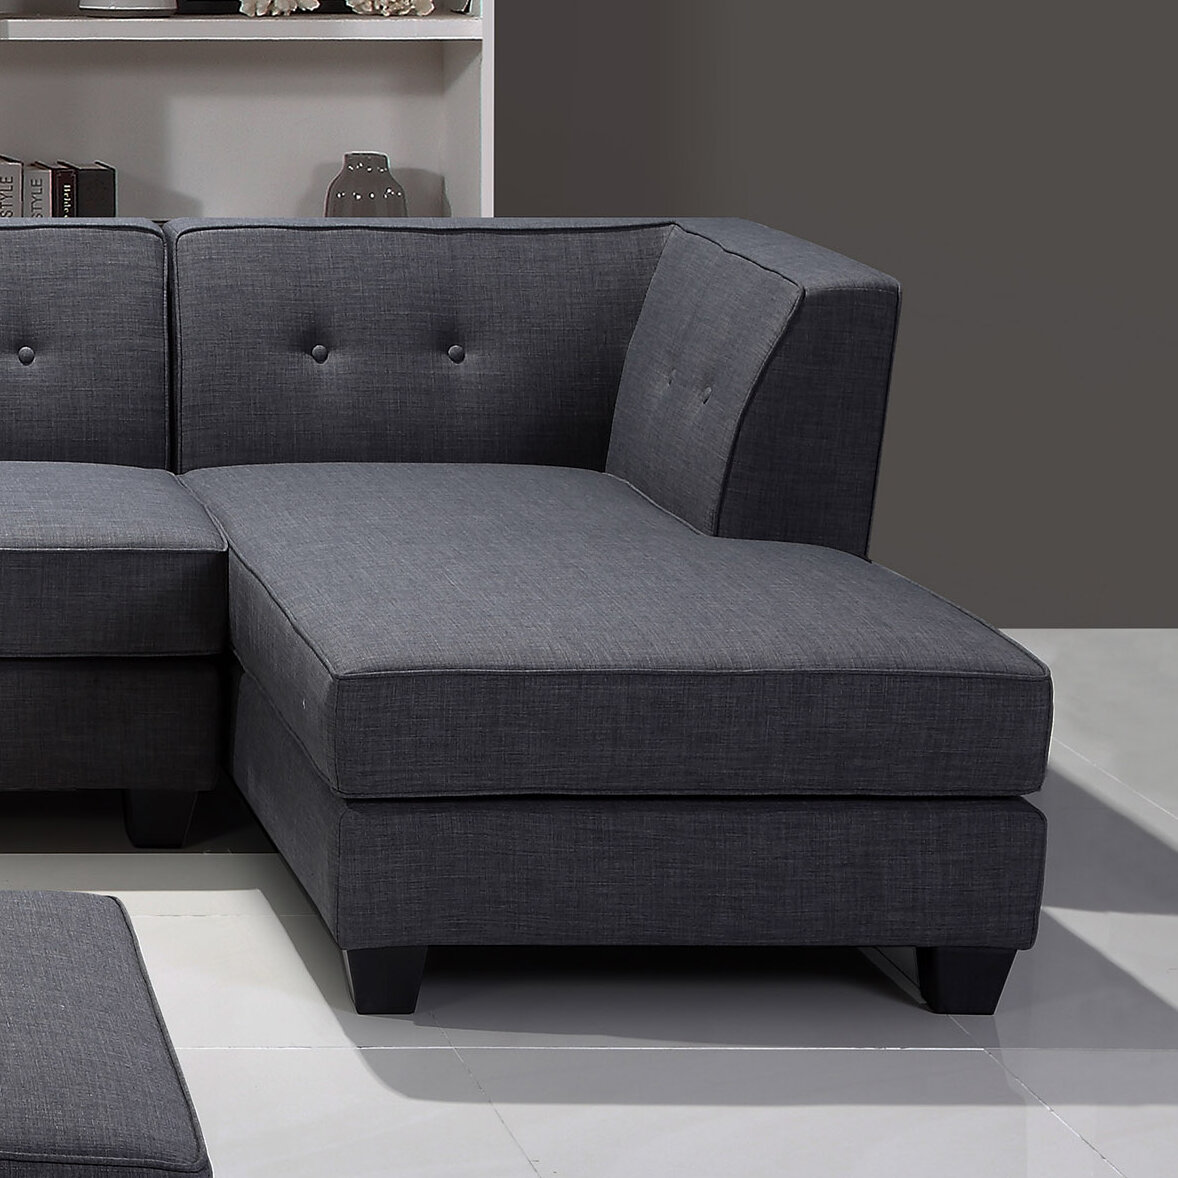 Mariotti Chaise Lounge